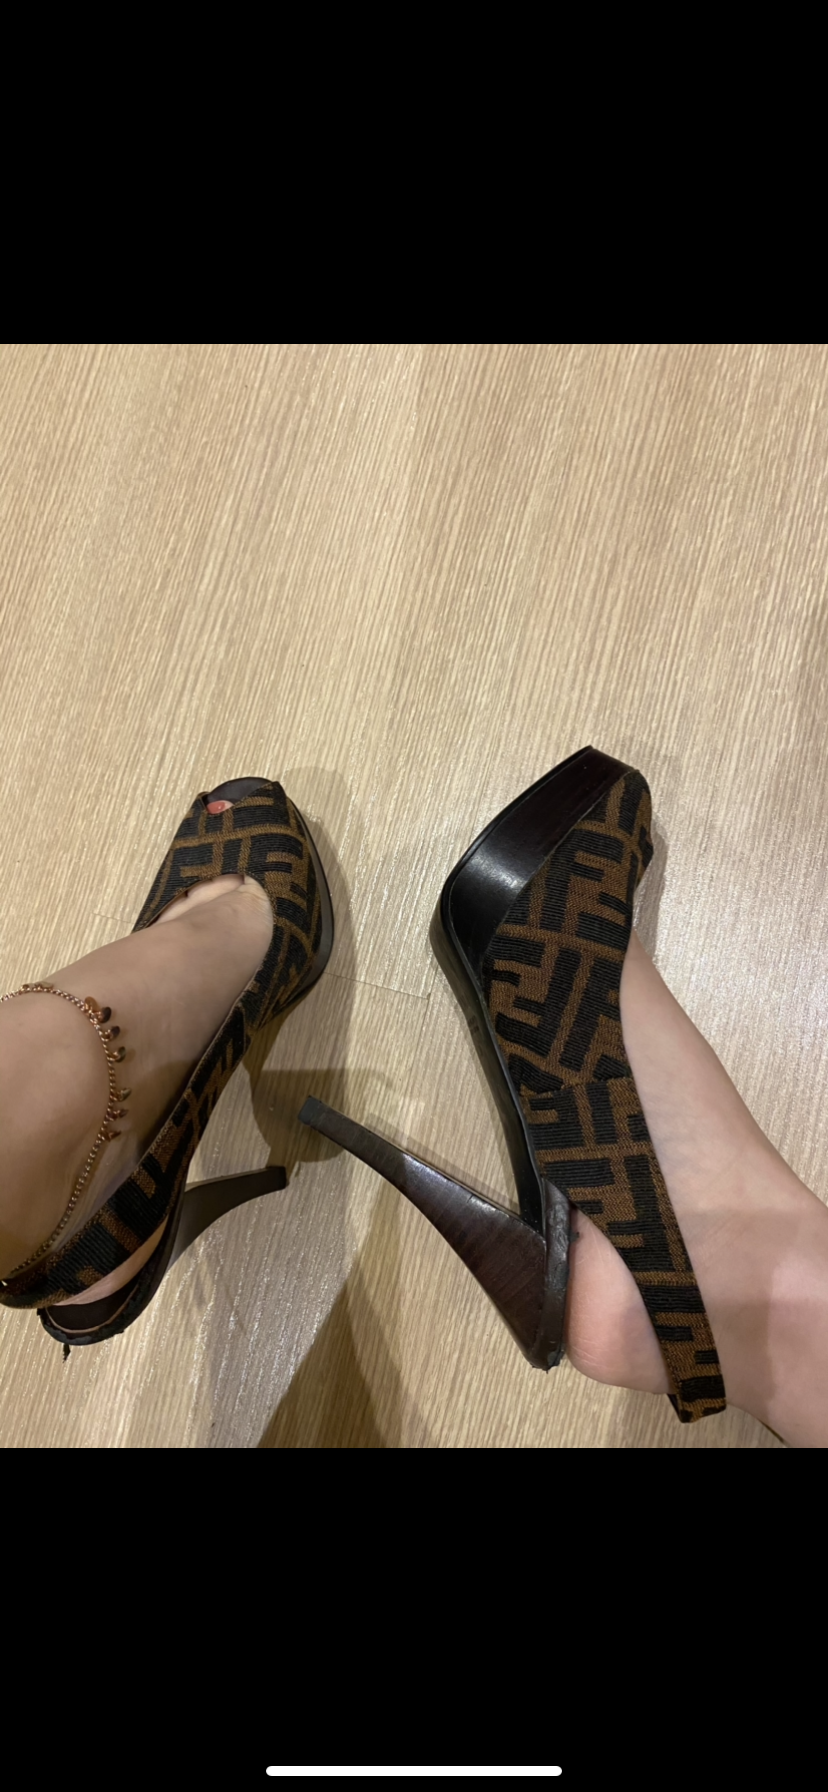 FENDI shoes preowned